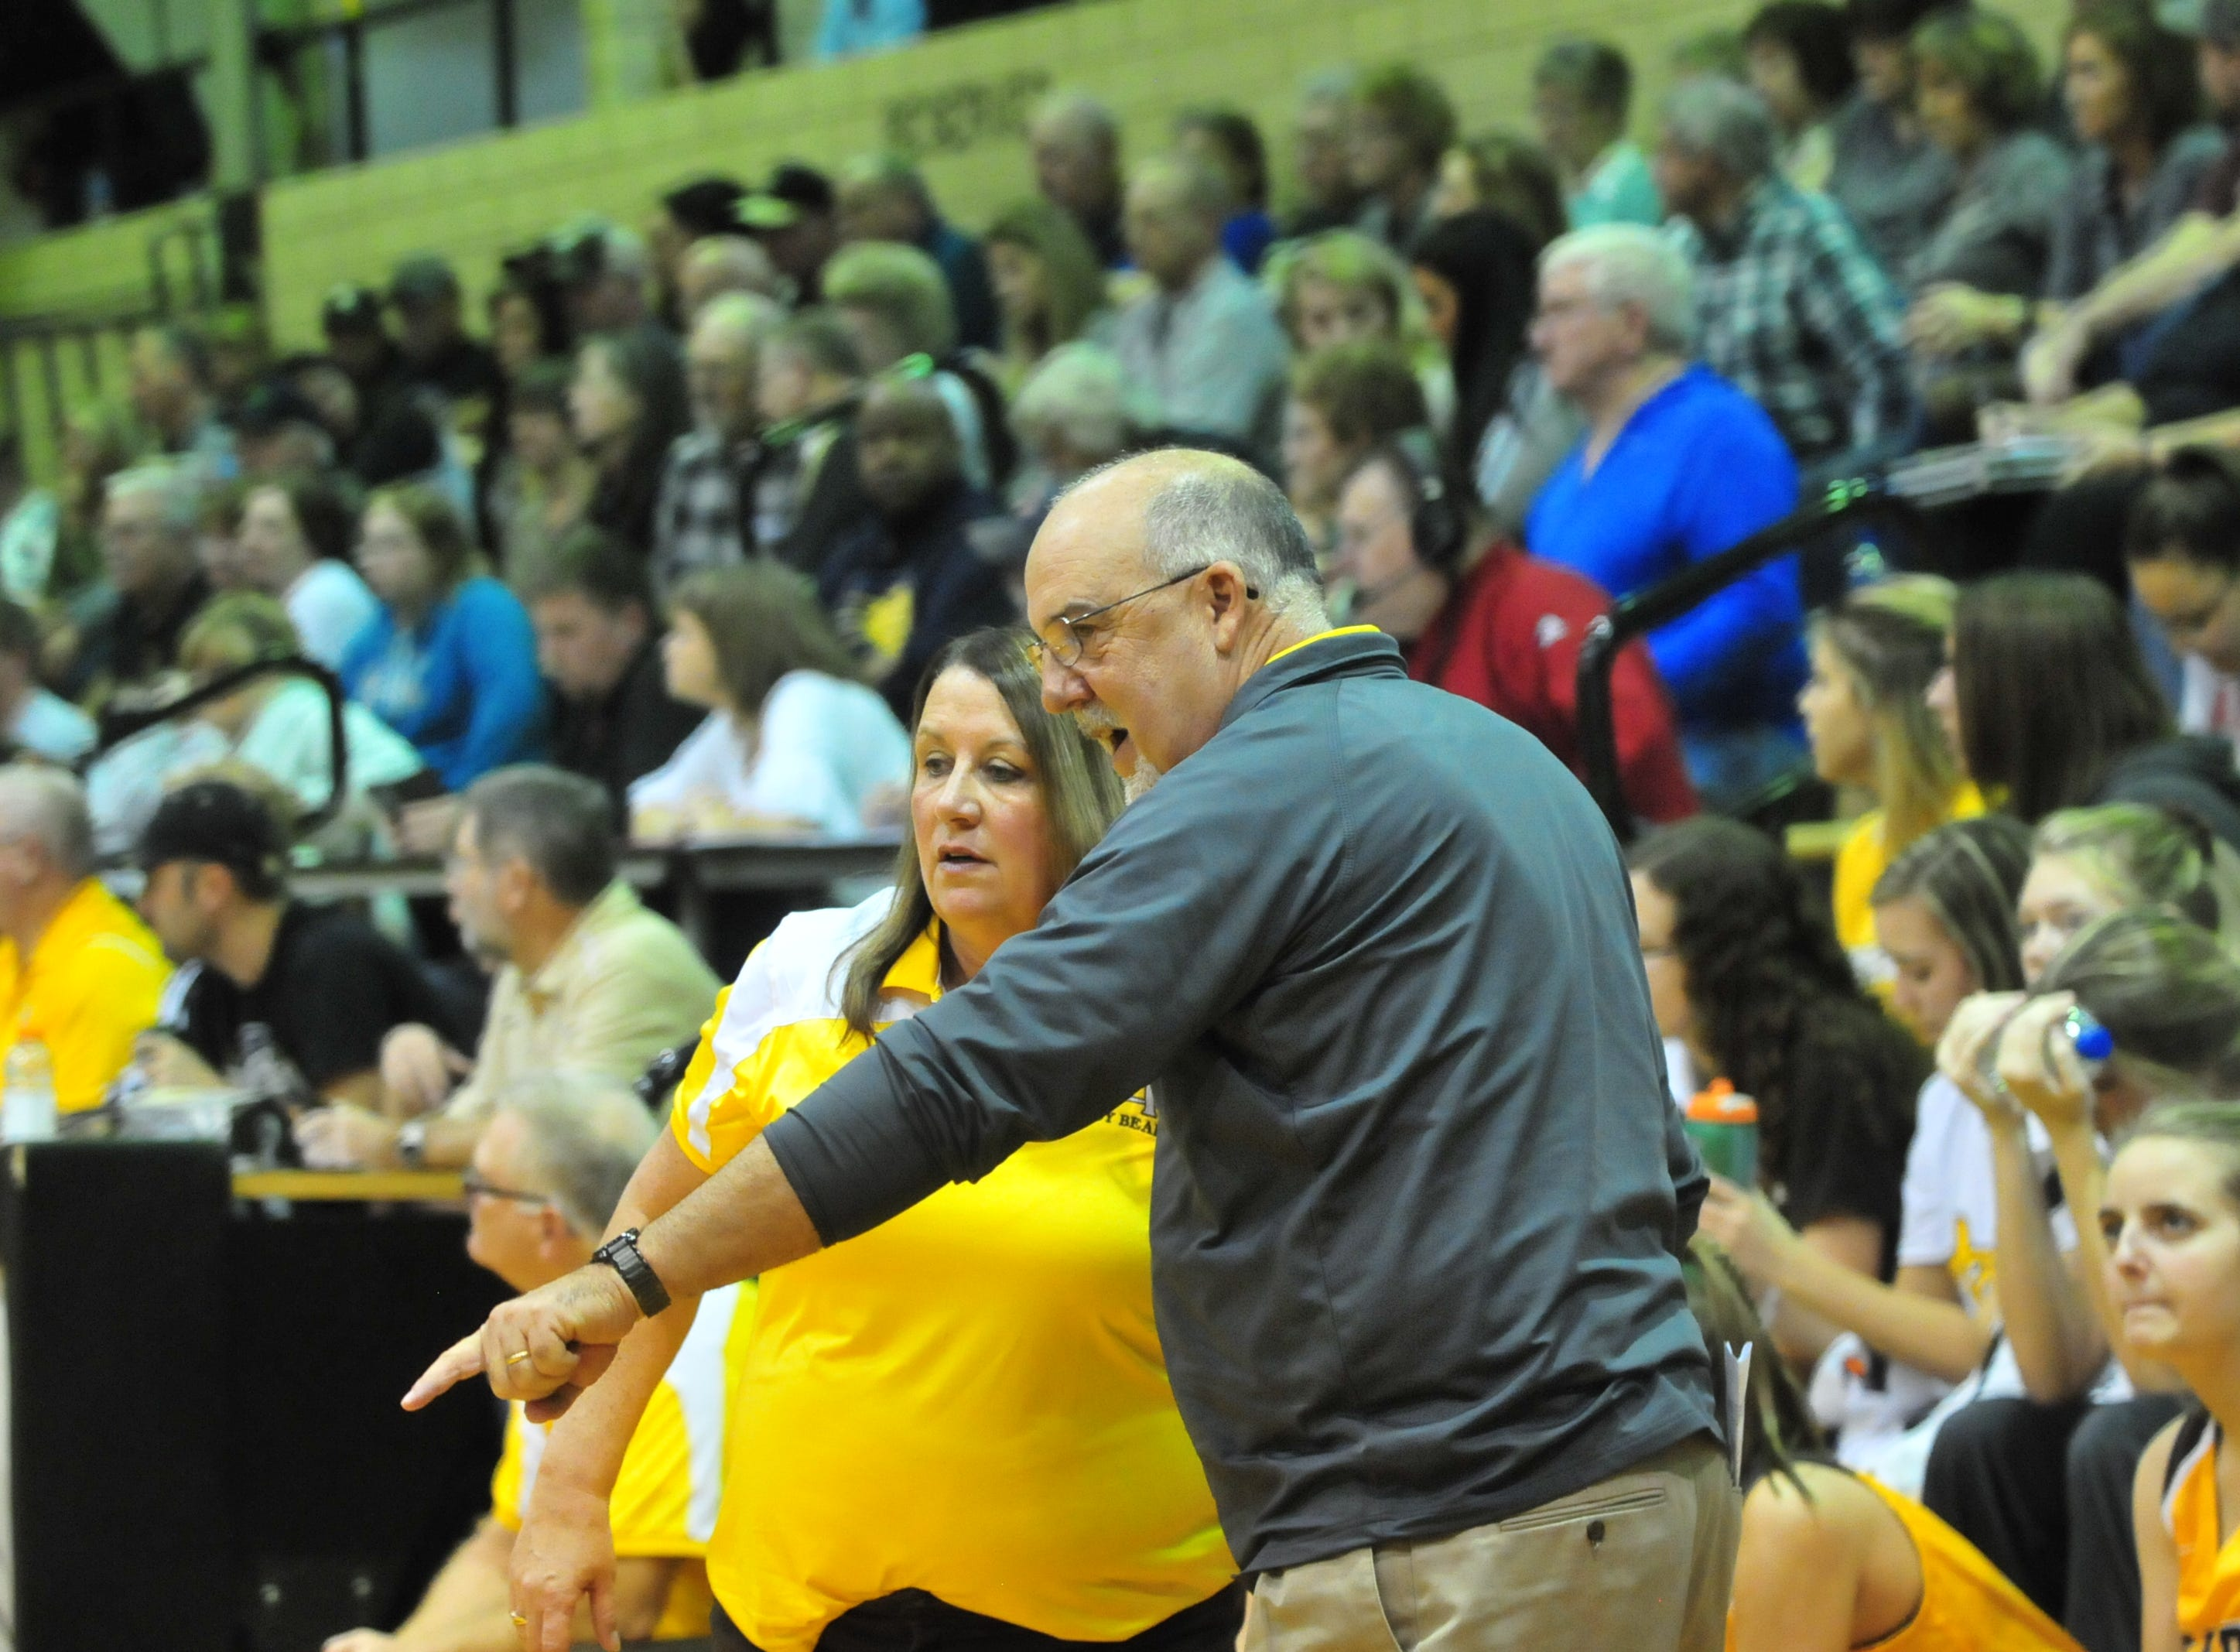 Monroe Central coaches talk during Winchester's 64-39 girls basketball win over Monroe Central Saturday, Dec. 1, 2018 at Winchester Fieldhouse.